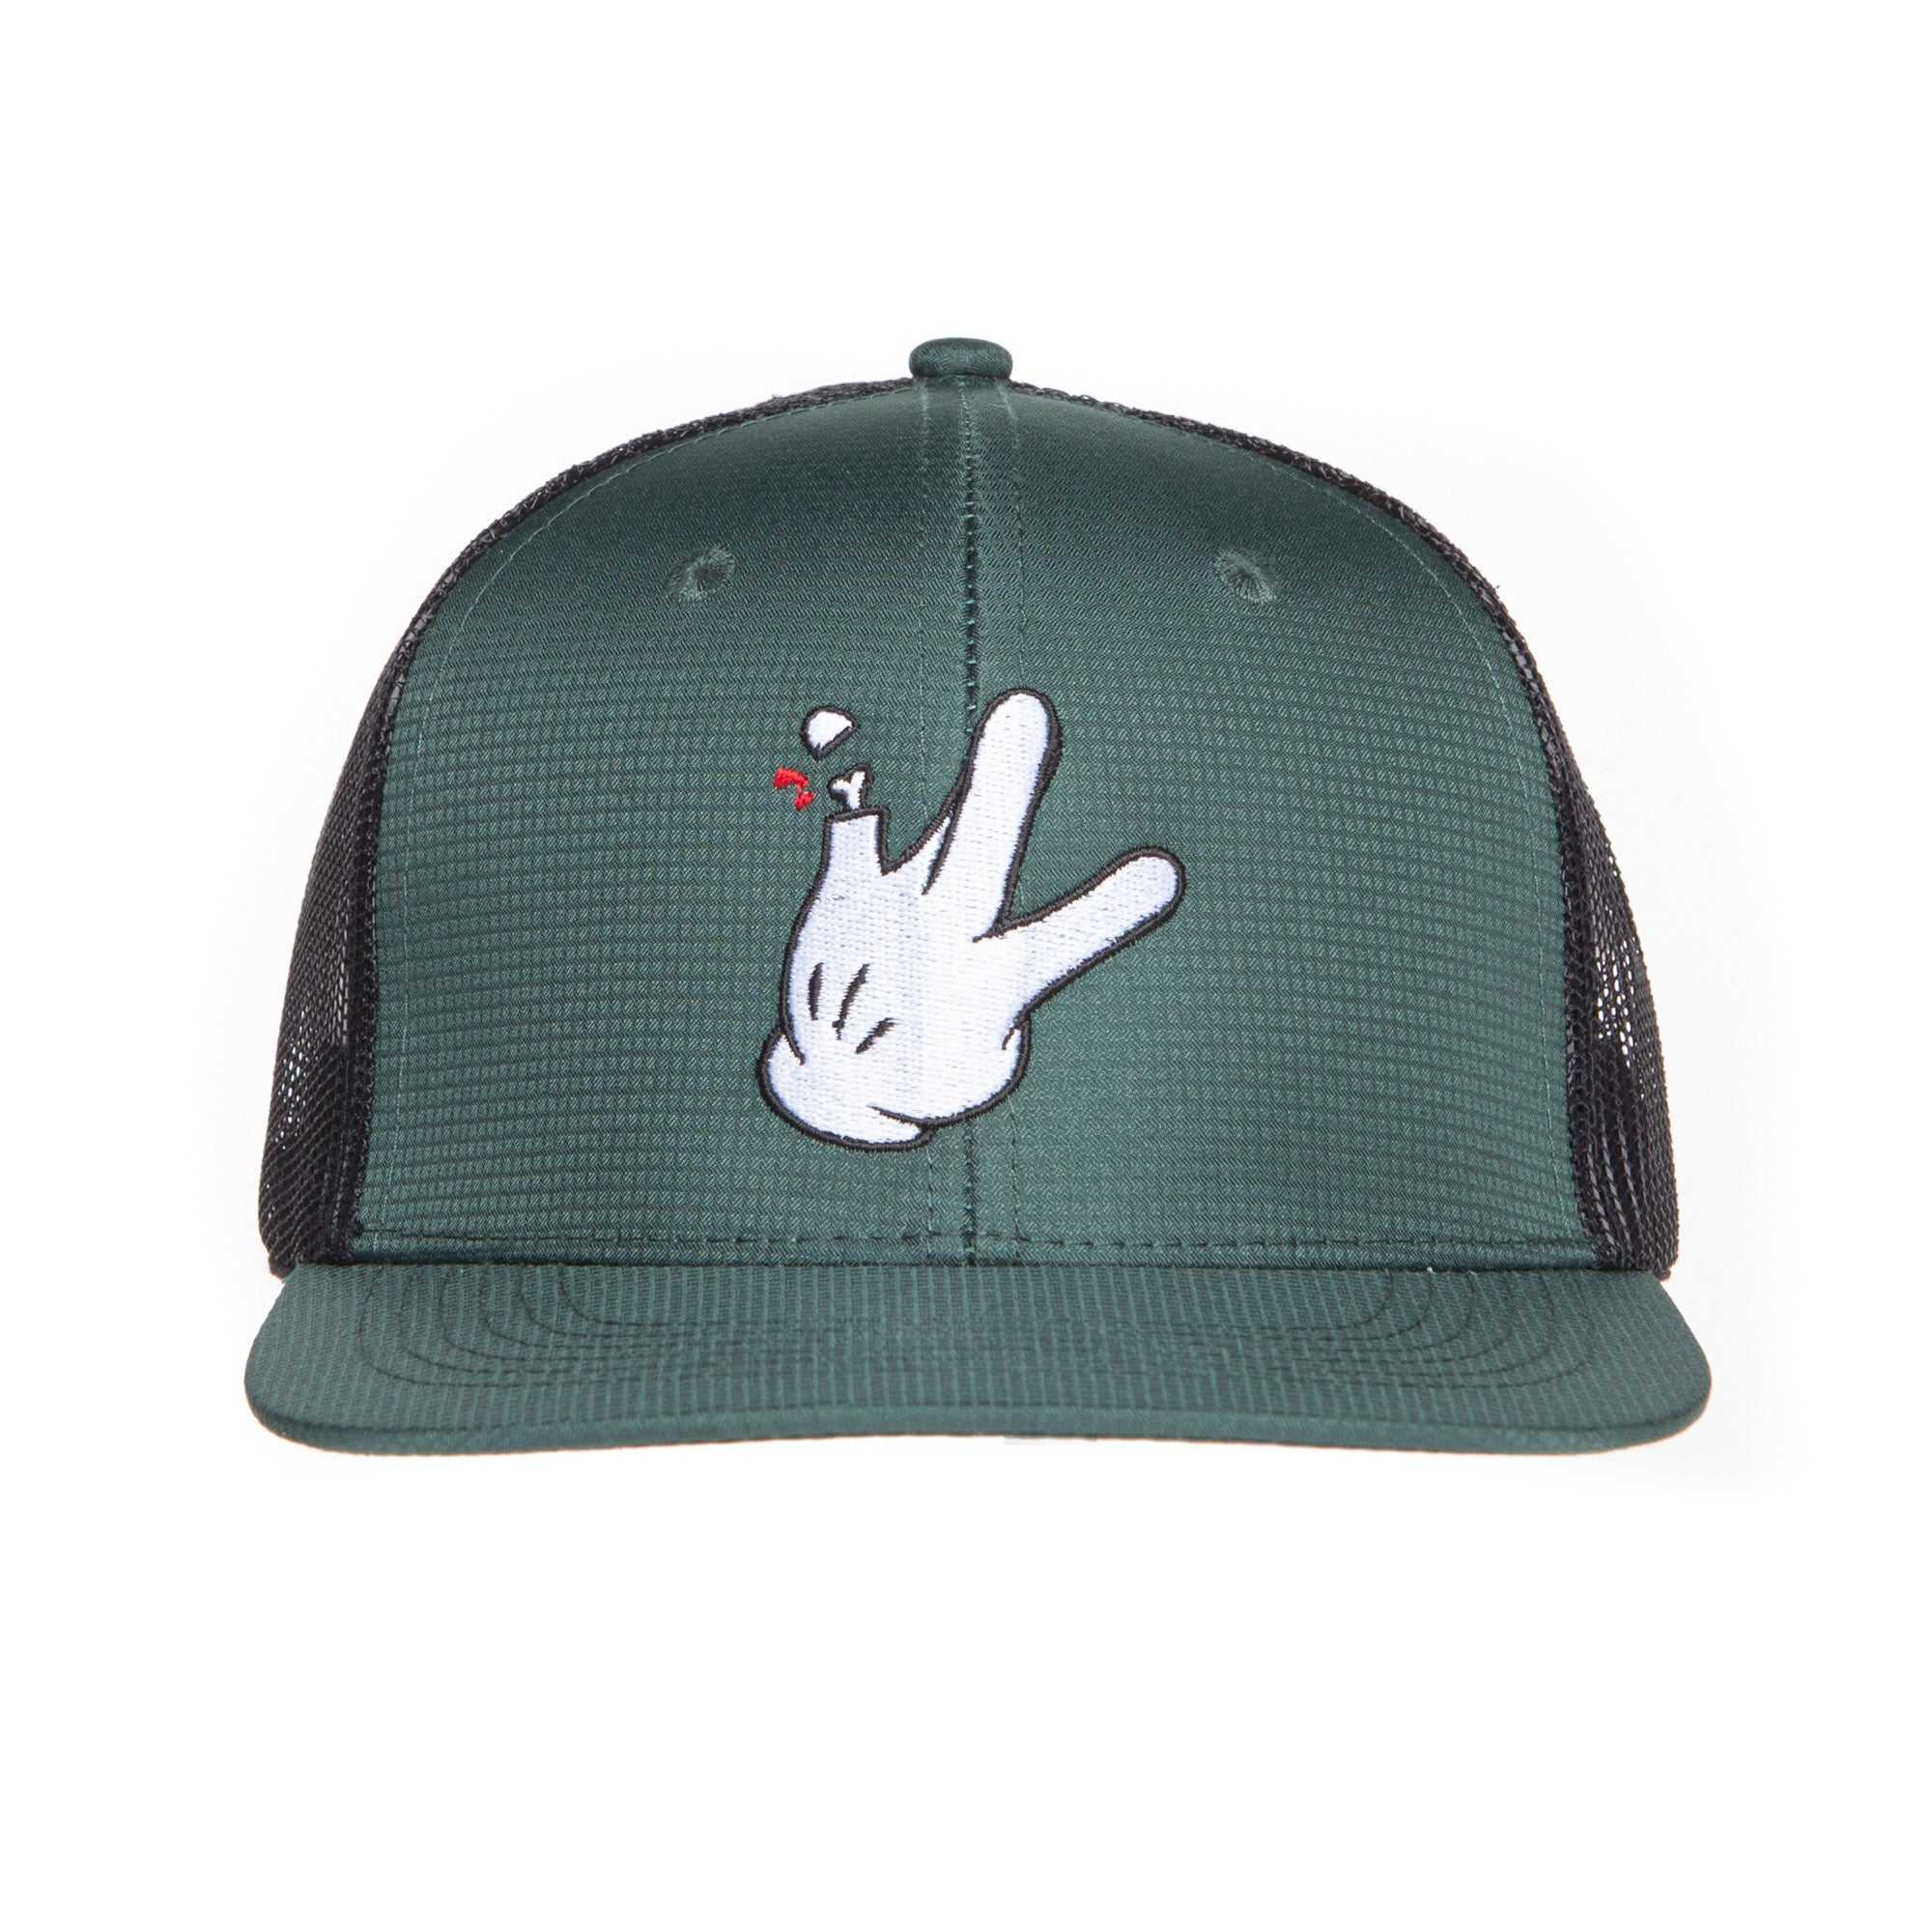 "Green Windbreaker RaceKraft ""Glove"" Trucker Hat"